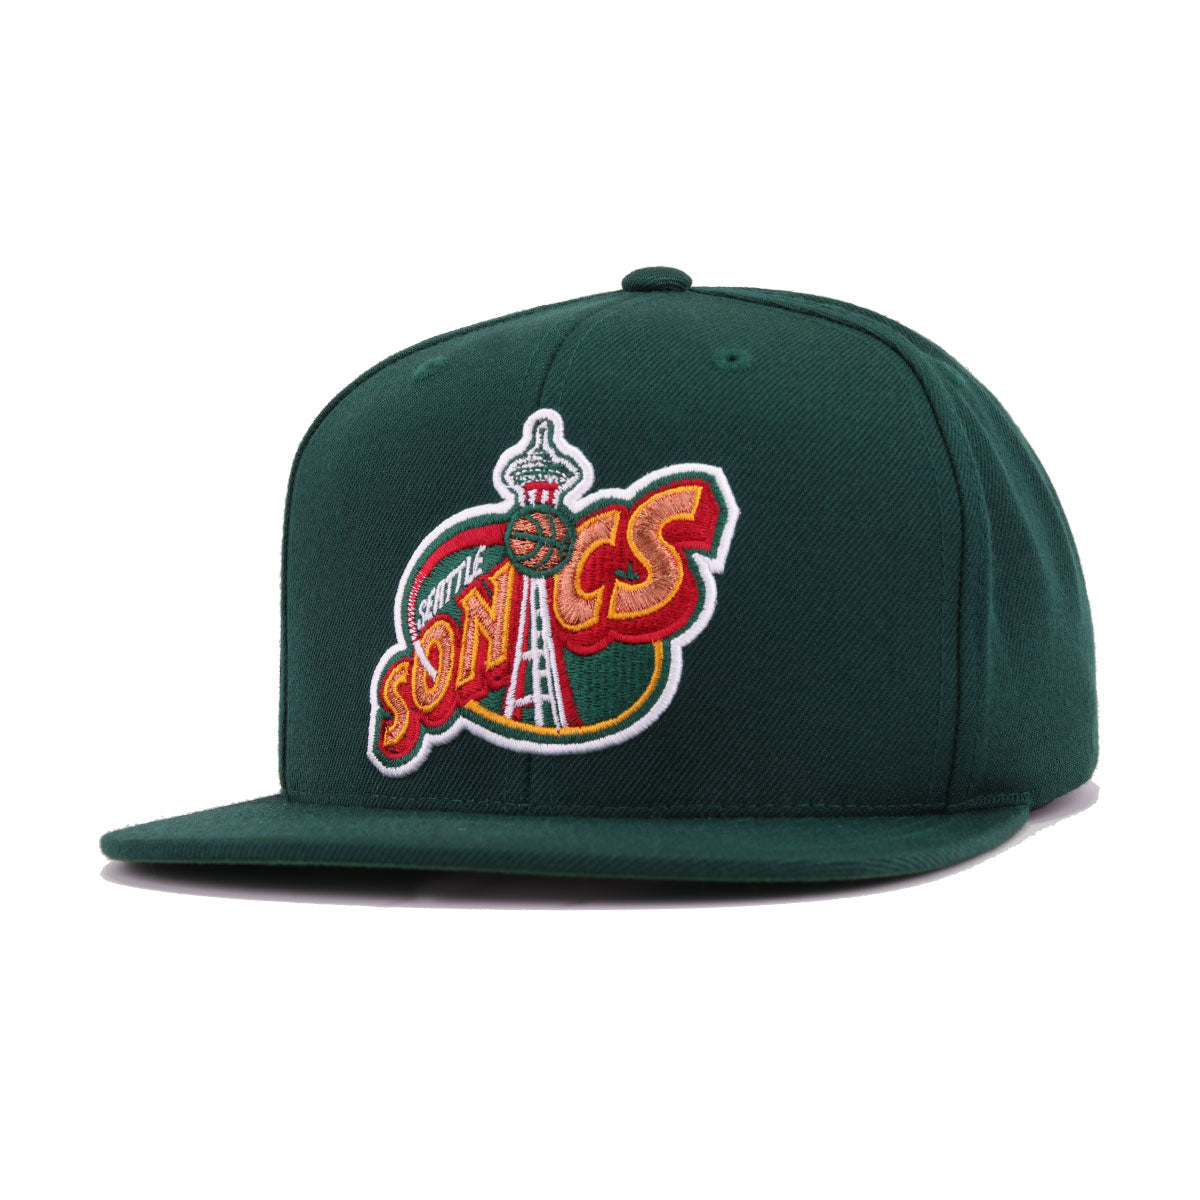 Seattle Supersonics Dark Green Hardwood Classics Mitchell and Ness Snapback